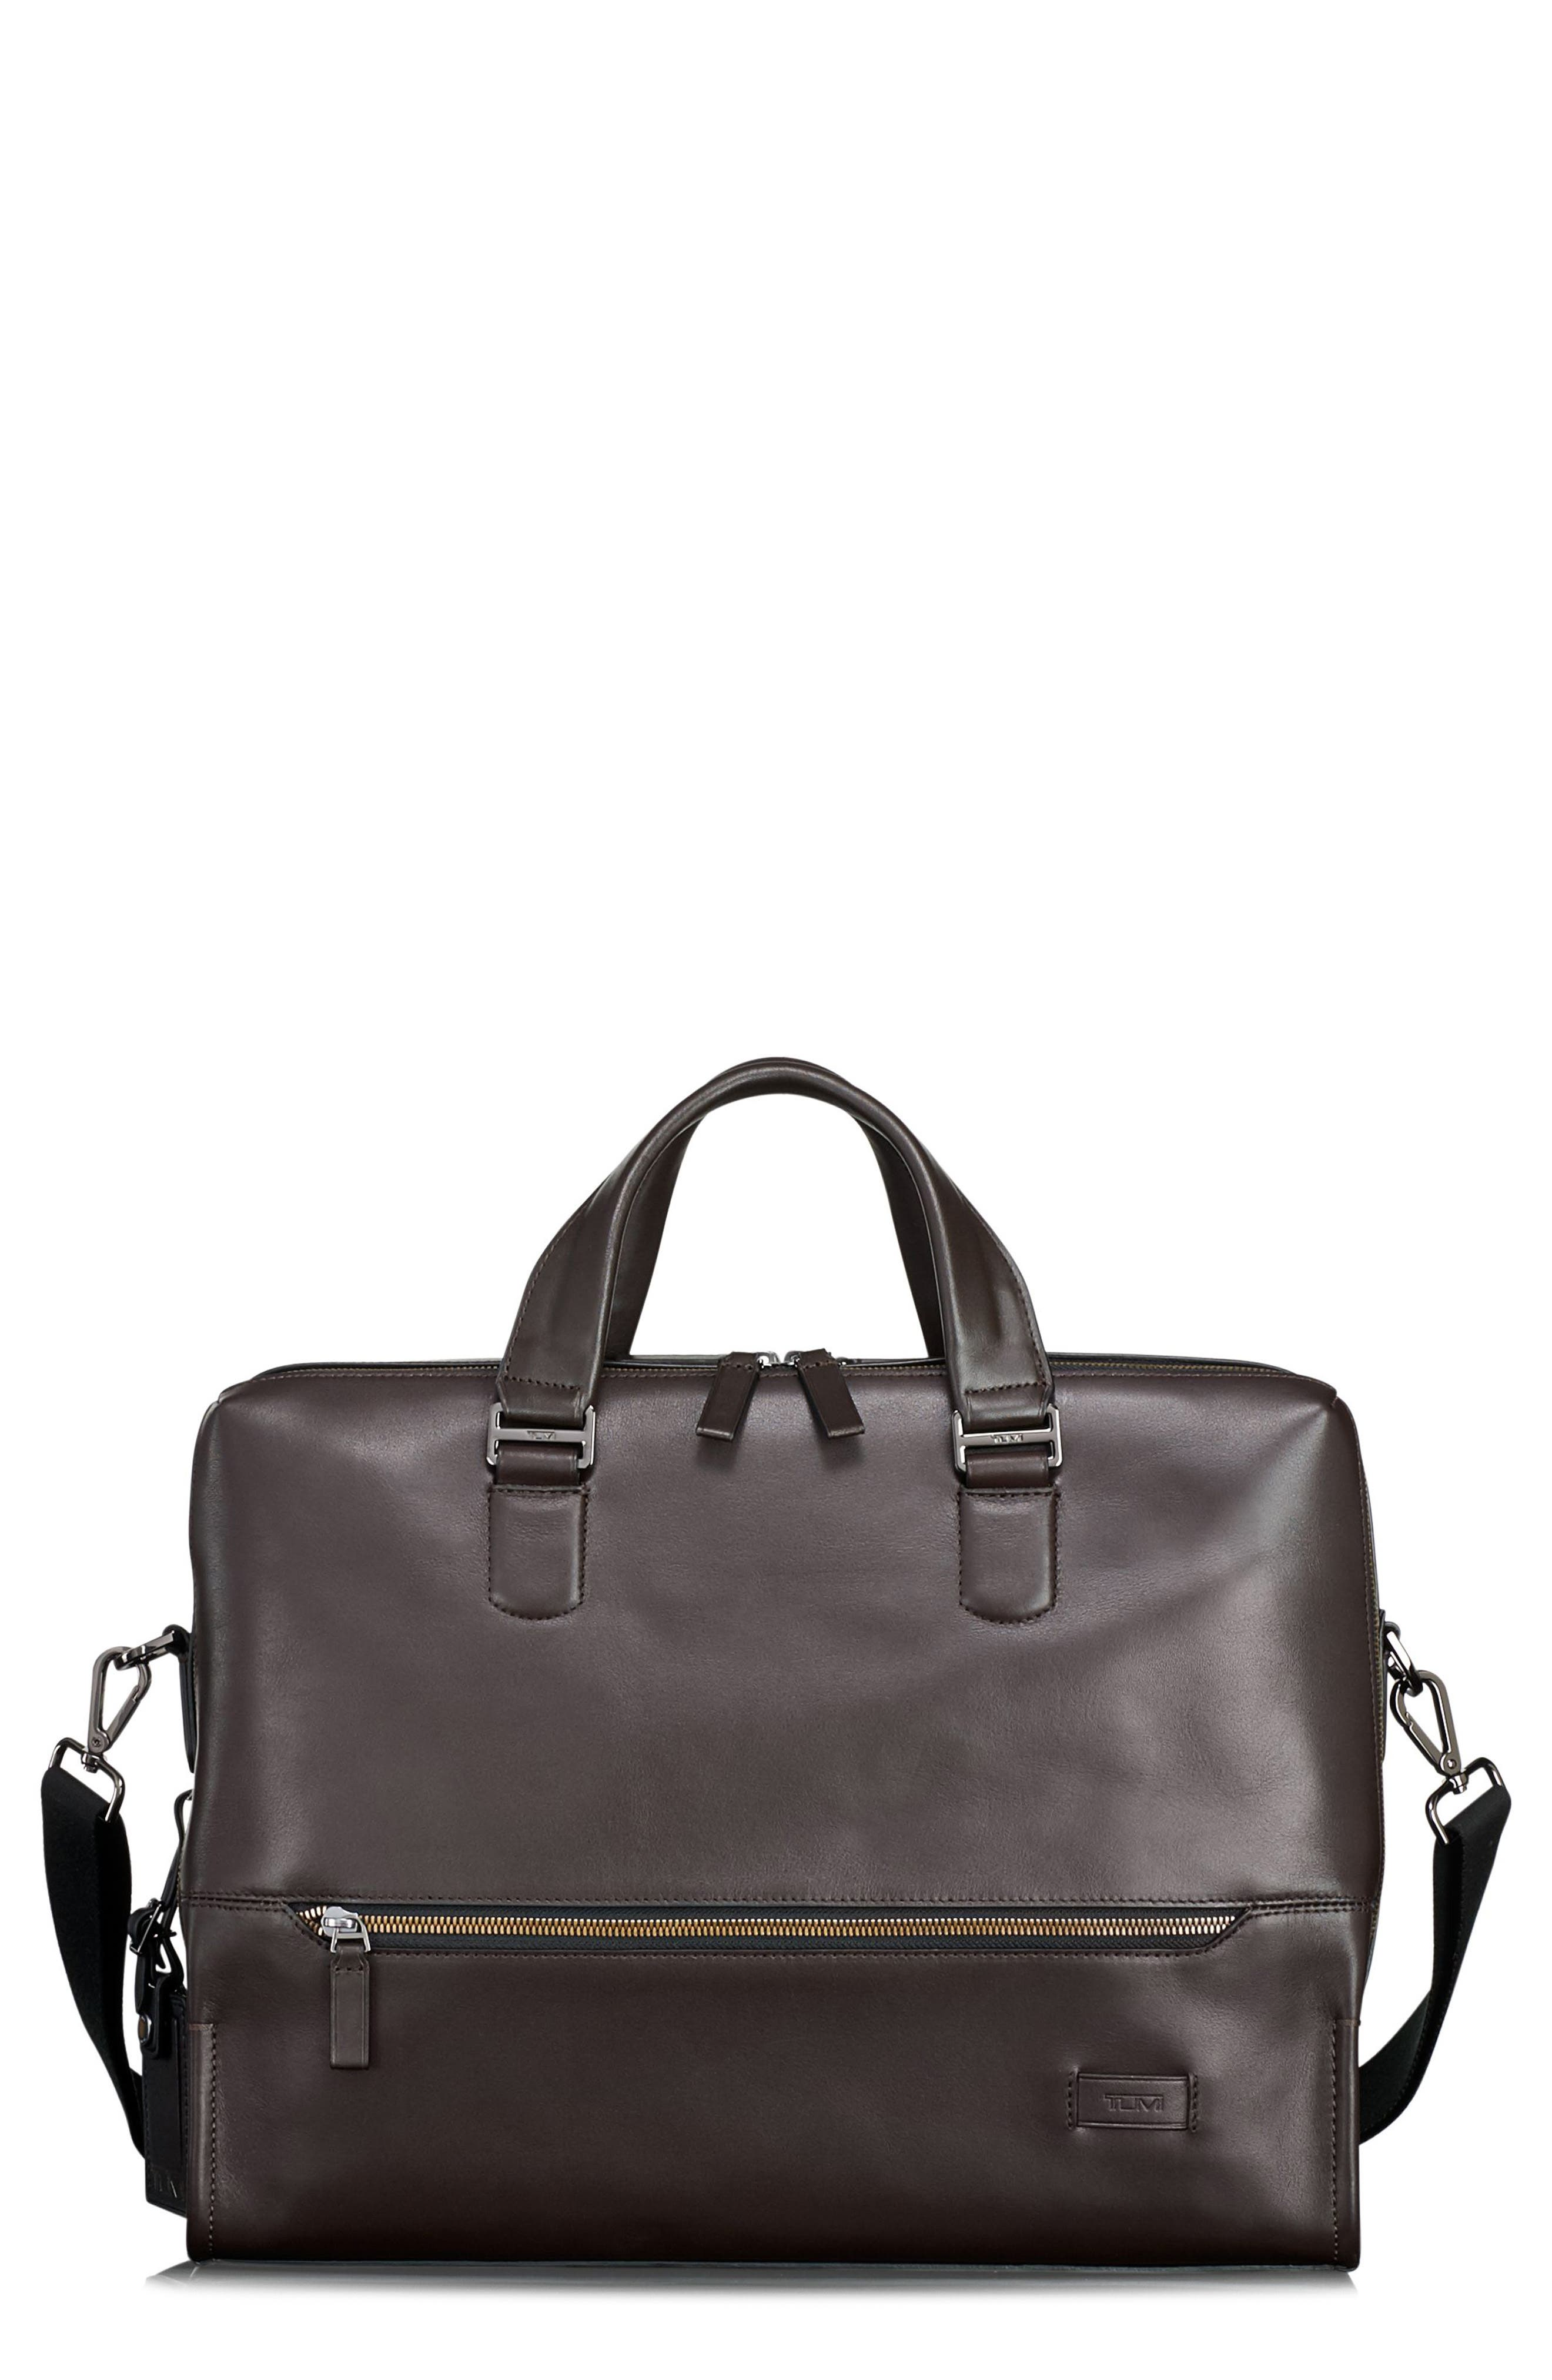 Main Image - Tumi Harrison Horton Double Zip Leather Briefcase